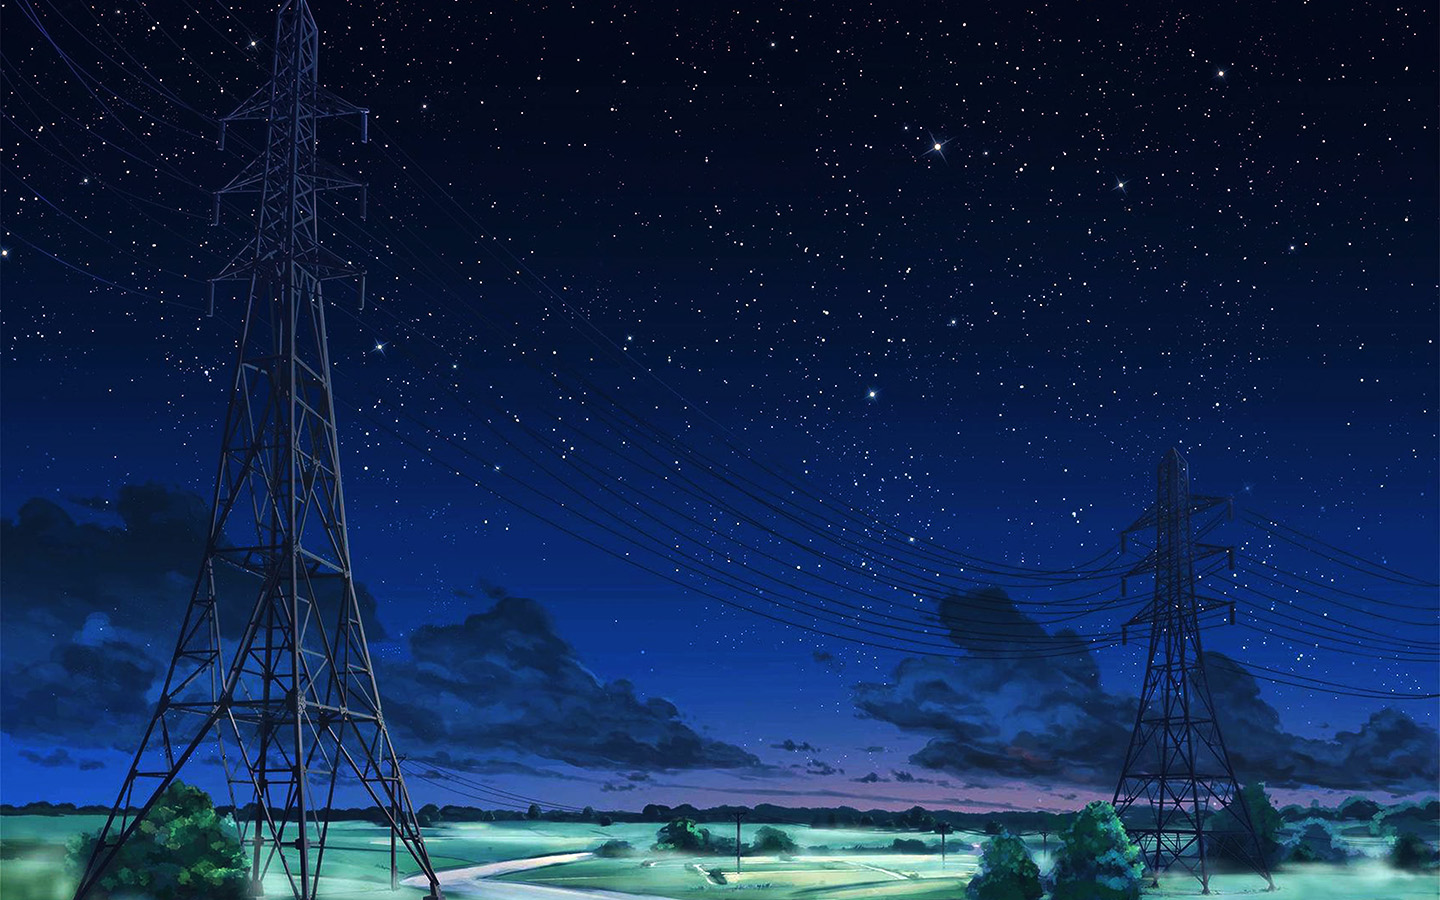 Large Hd Wallpapers For Laptop Aw16 Arseniy Chebynkin Night Sky Star Blue Illustration